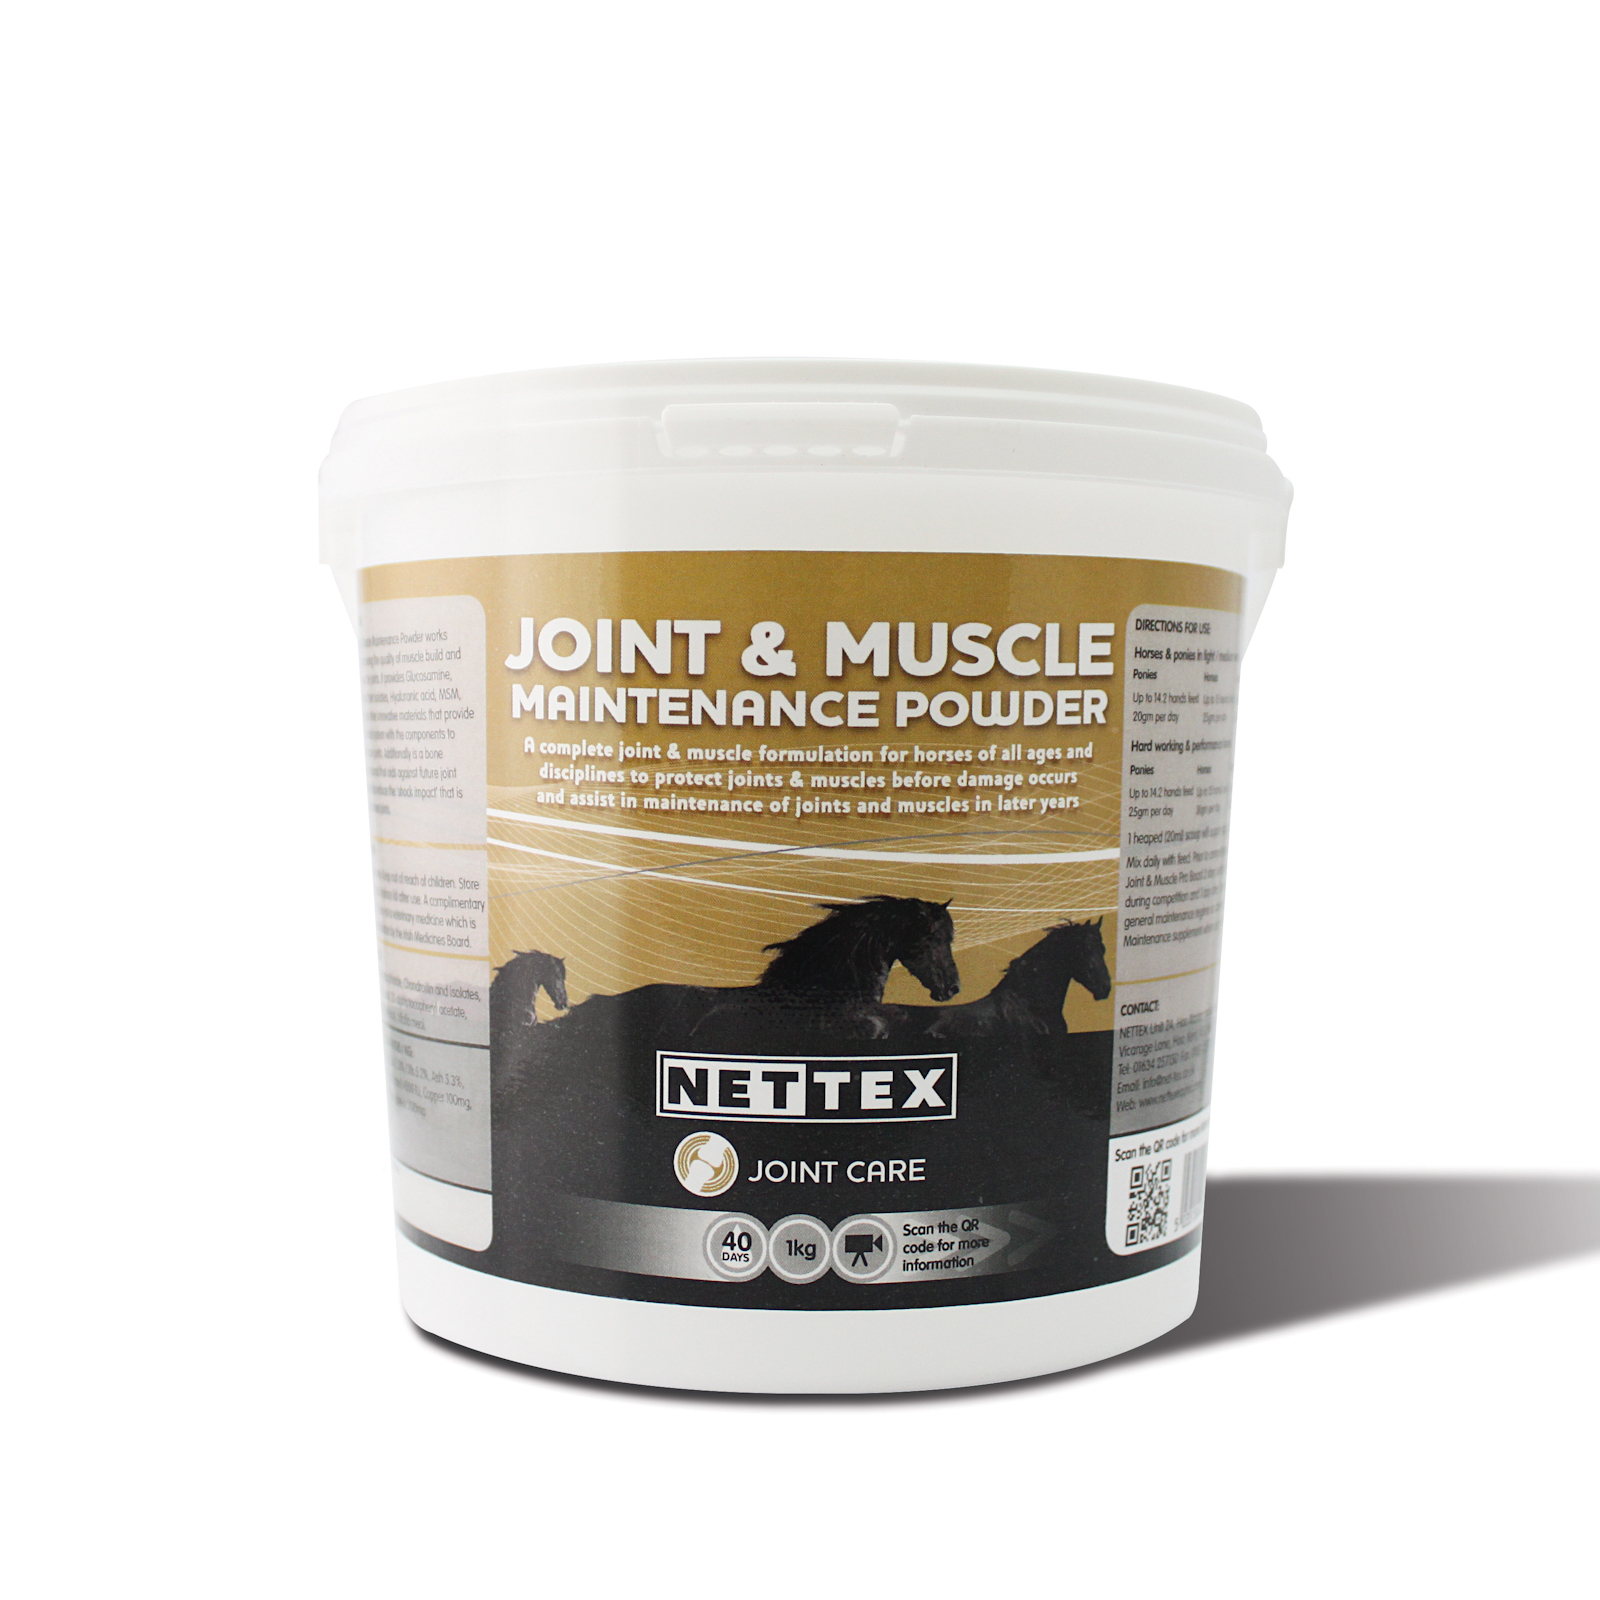 Nettex Joint & Muscle Maintenance Powder 1 kg